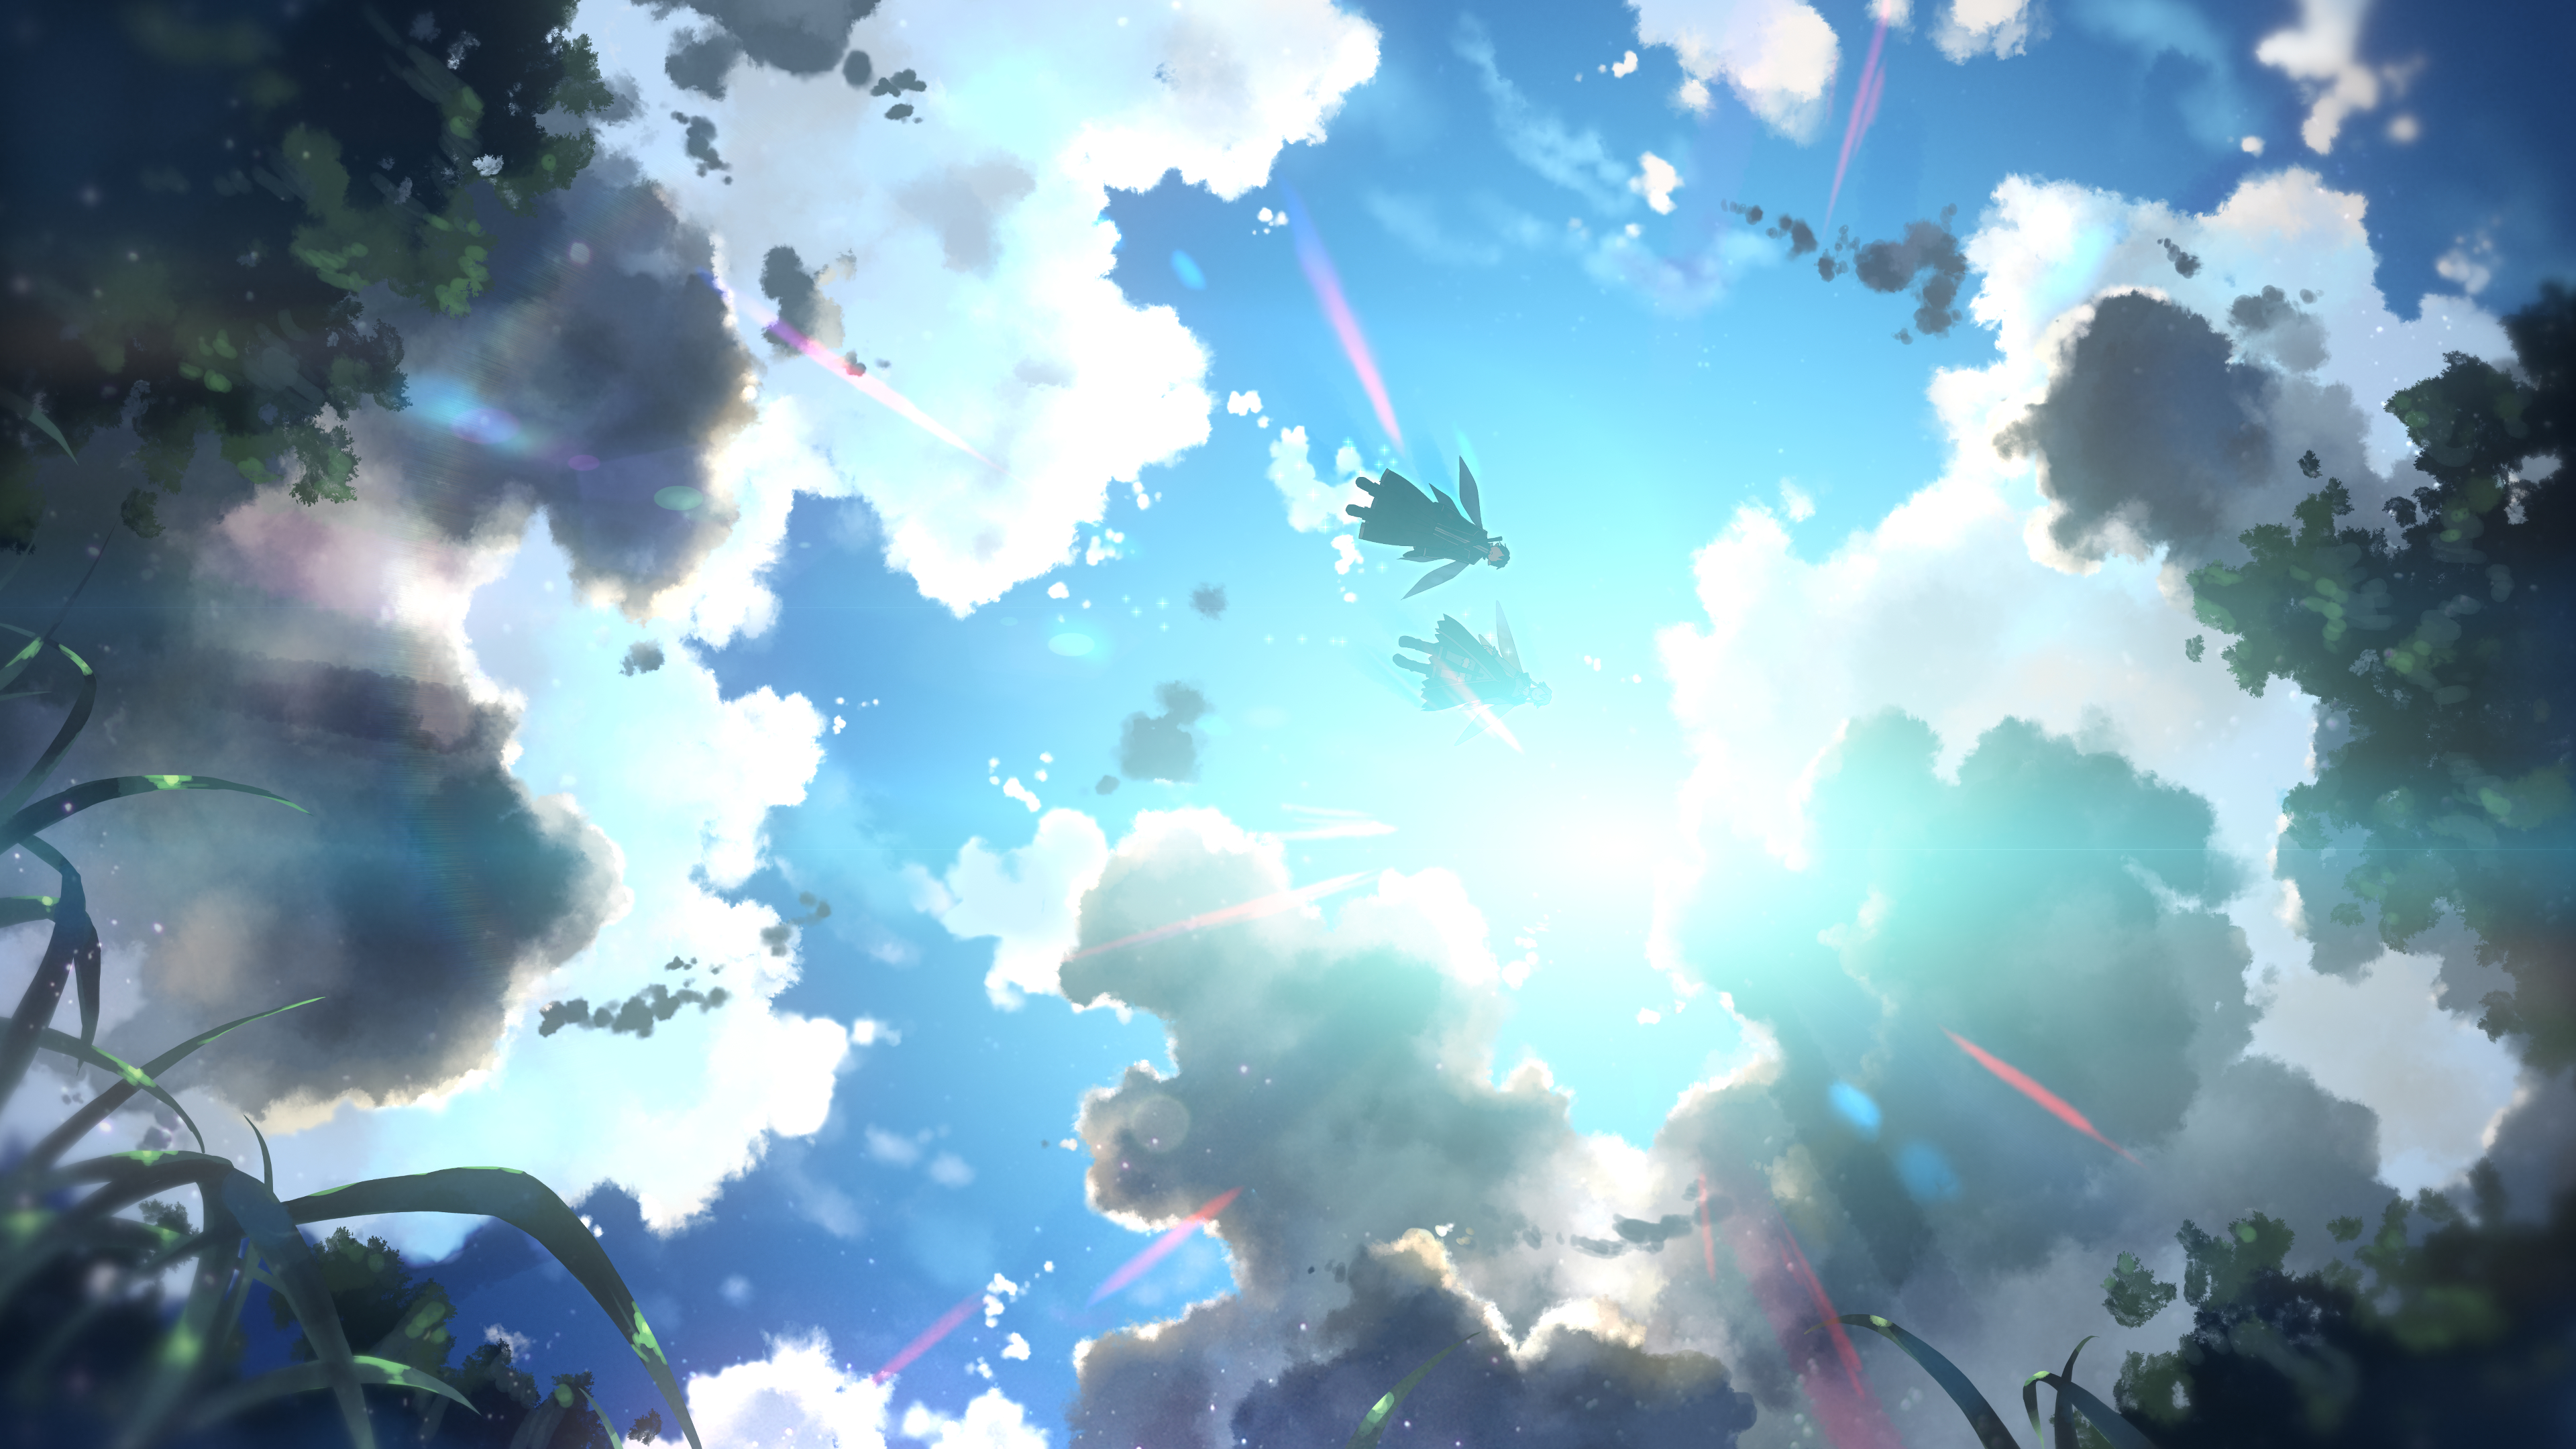 Sword Art Online Hd Wallpaper 1915589 Zerochan Anime Image Board